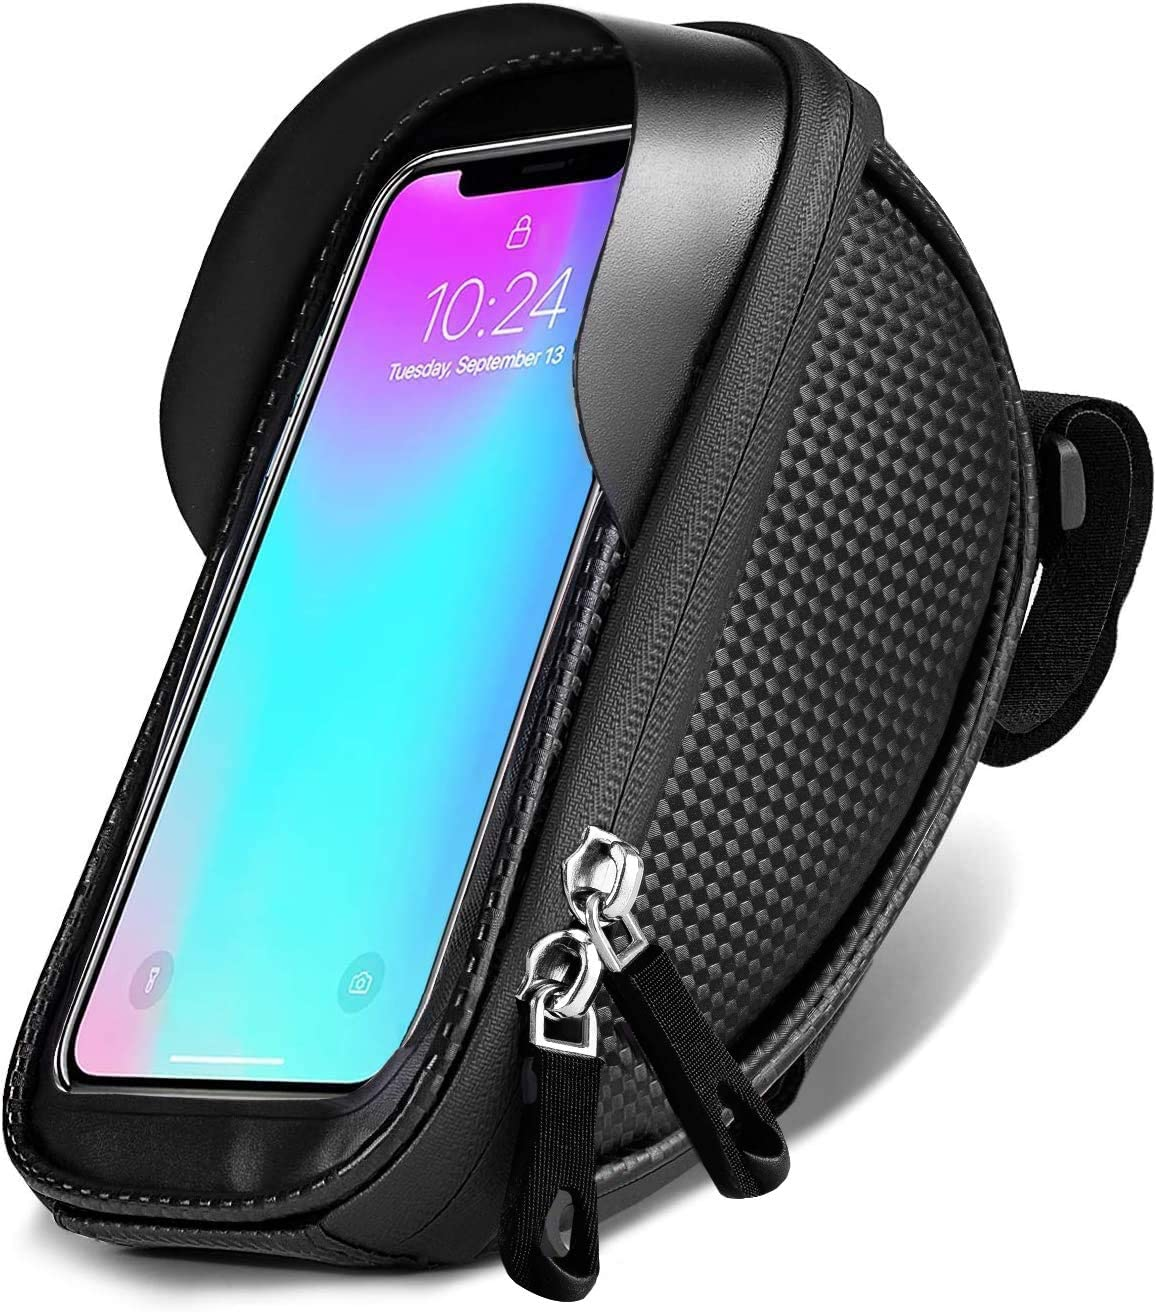 Eletecpro Bicycle Phone Front Frame Bag, Bicycle Phone Bag Bicycle Phone Mount Bag Waterproof Handlebar Bike Phone Case Holder Sensitive Touch Screen